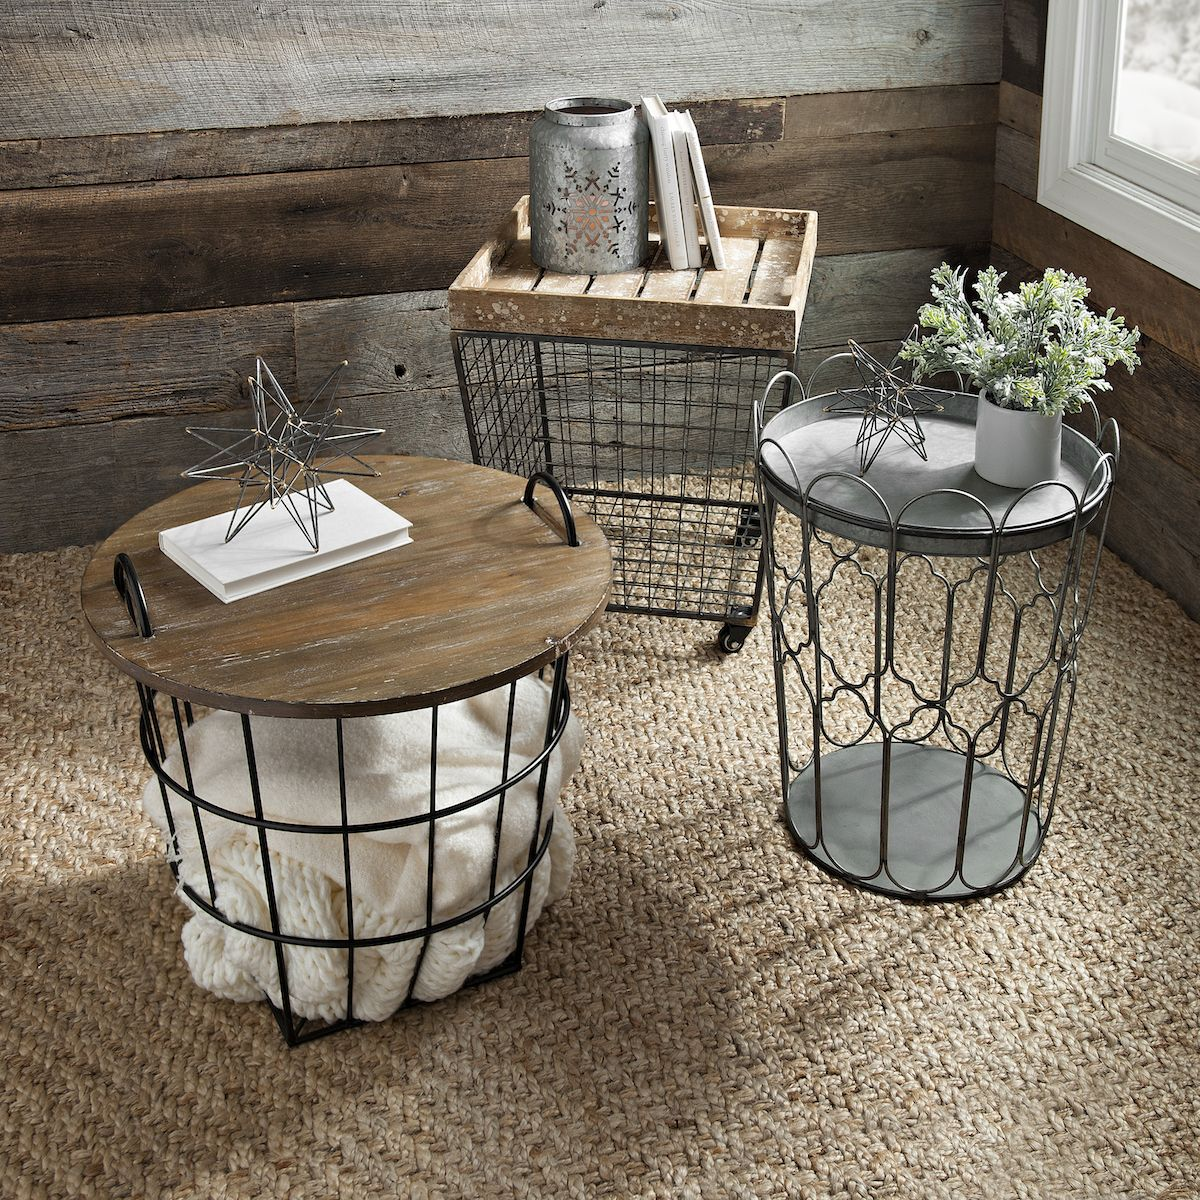 industrial wire crate accent table our new house with storage wondering where keep all those extra blankets tables have the ikea garden chairs west elm rugs wood and metal meyda